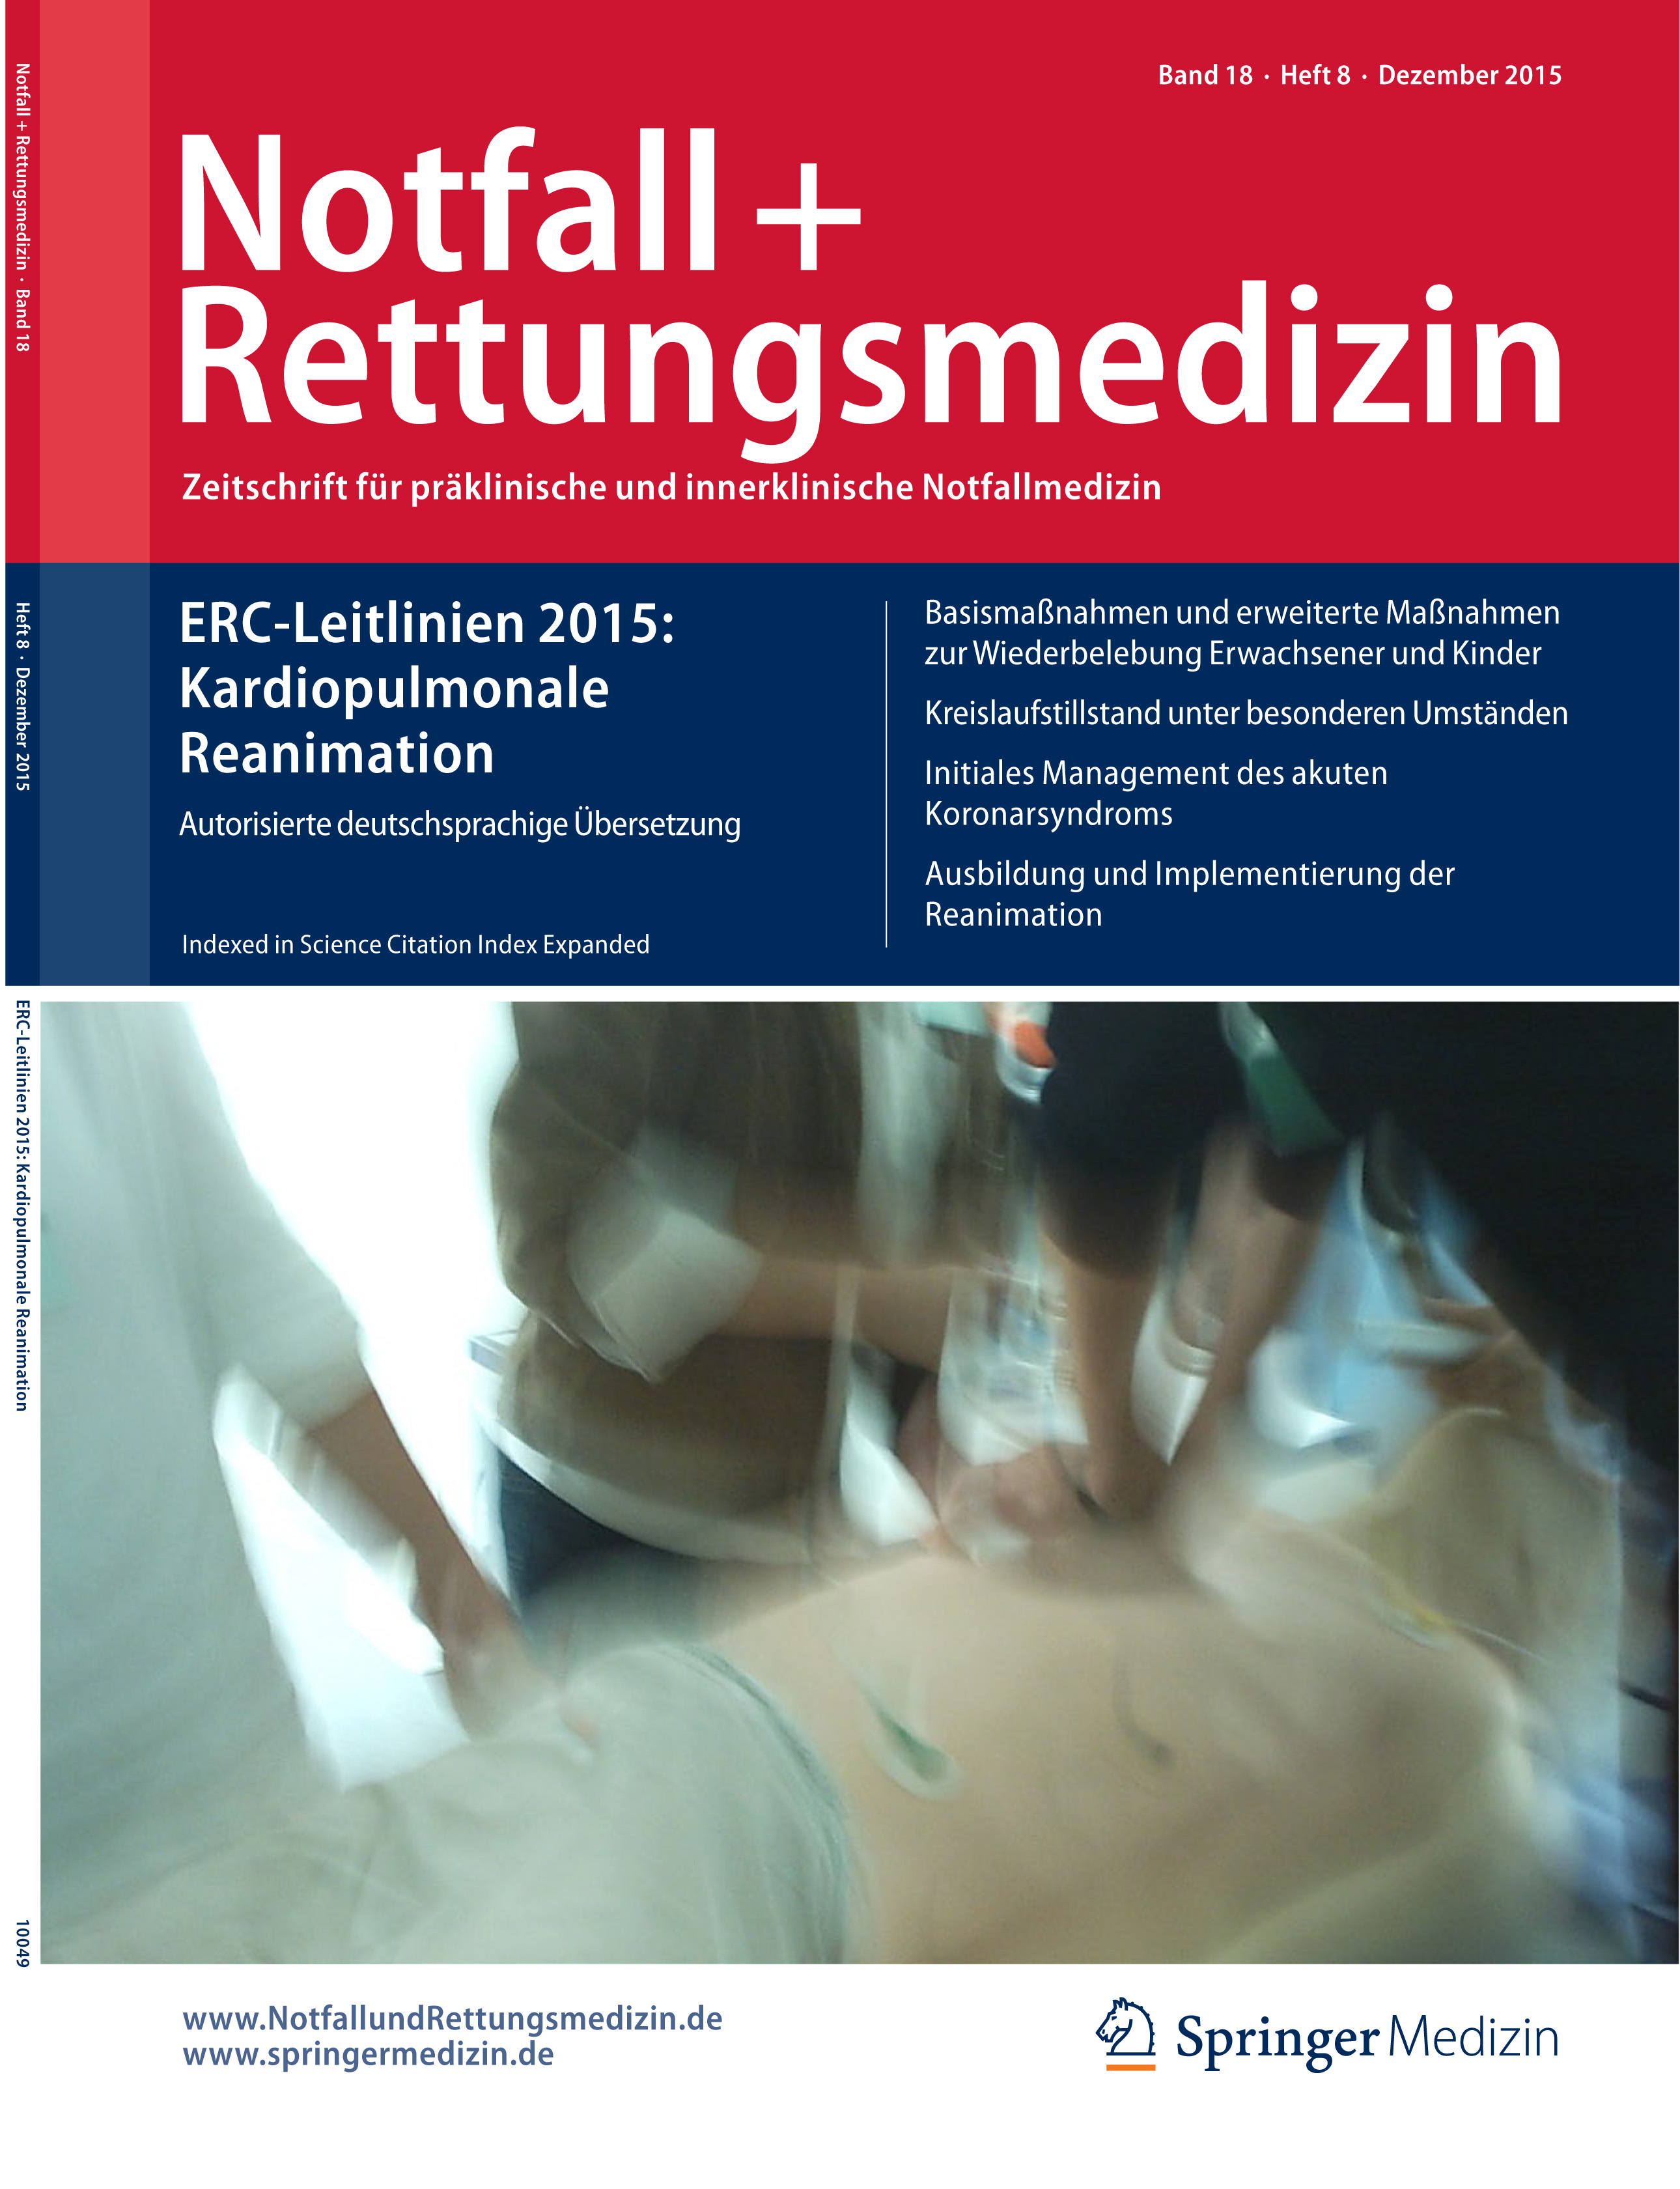 NORE Cover Leitlinien 2015